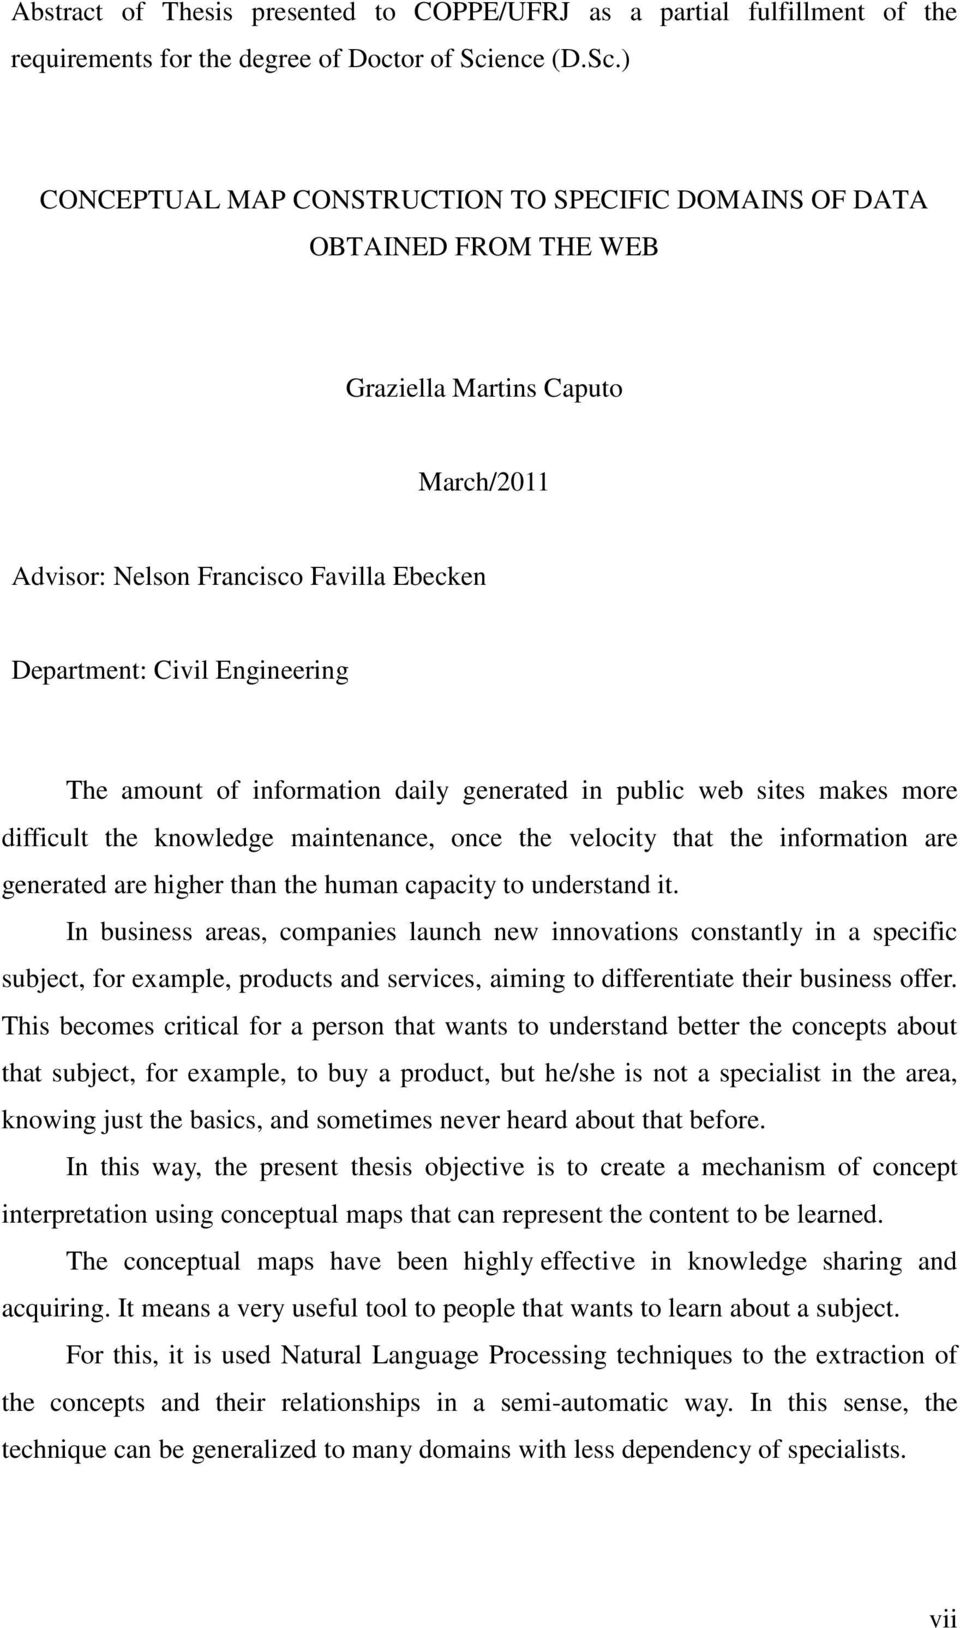 ) CONCEPTUAL MAP CONSTRUCTION TO SPECIFIC DOMAINS OF DATA OBTAINED FROM THE WEB Graziella Martins Caputo March/2011 Advisor: Nelson Francisco Favilla Ebecken Department: Civil Engineering The amount